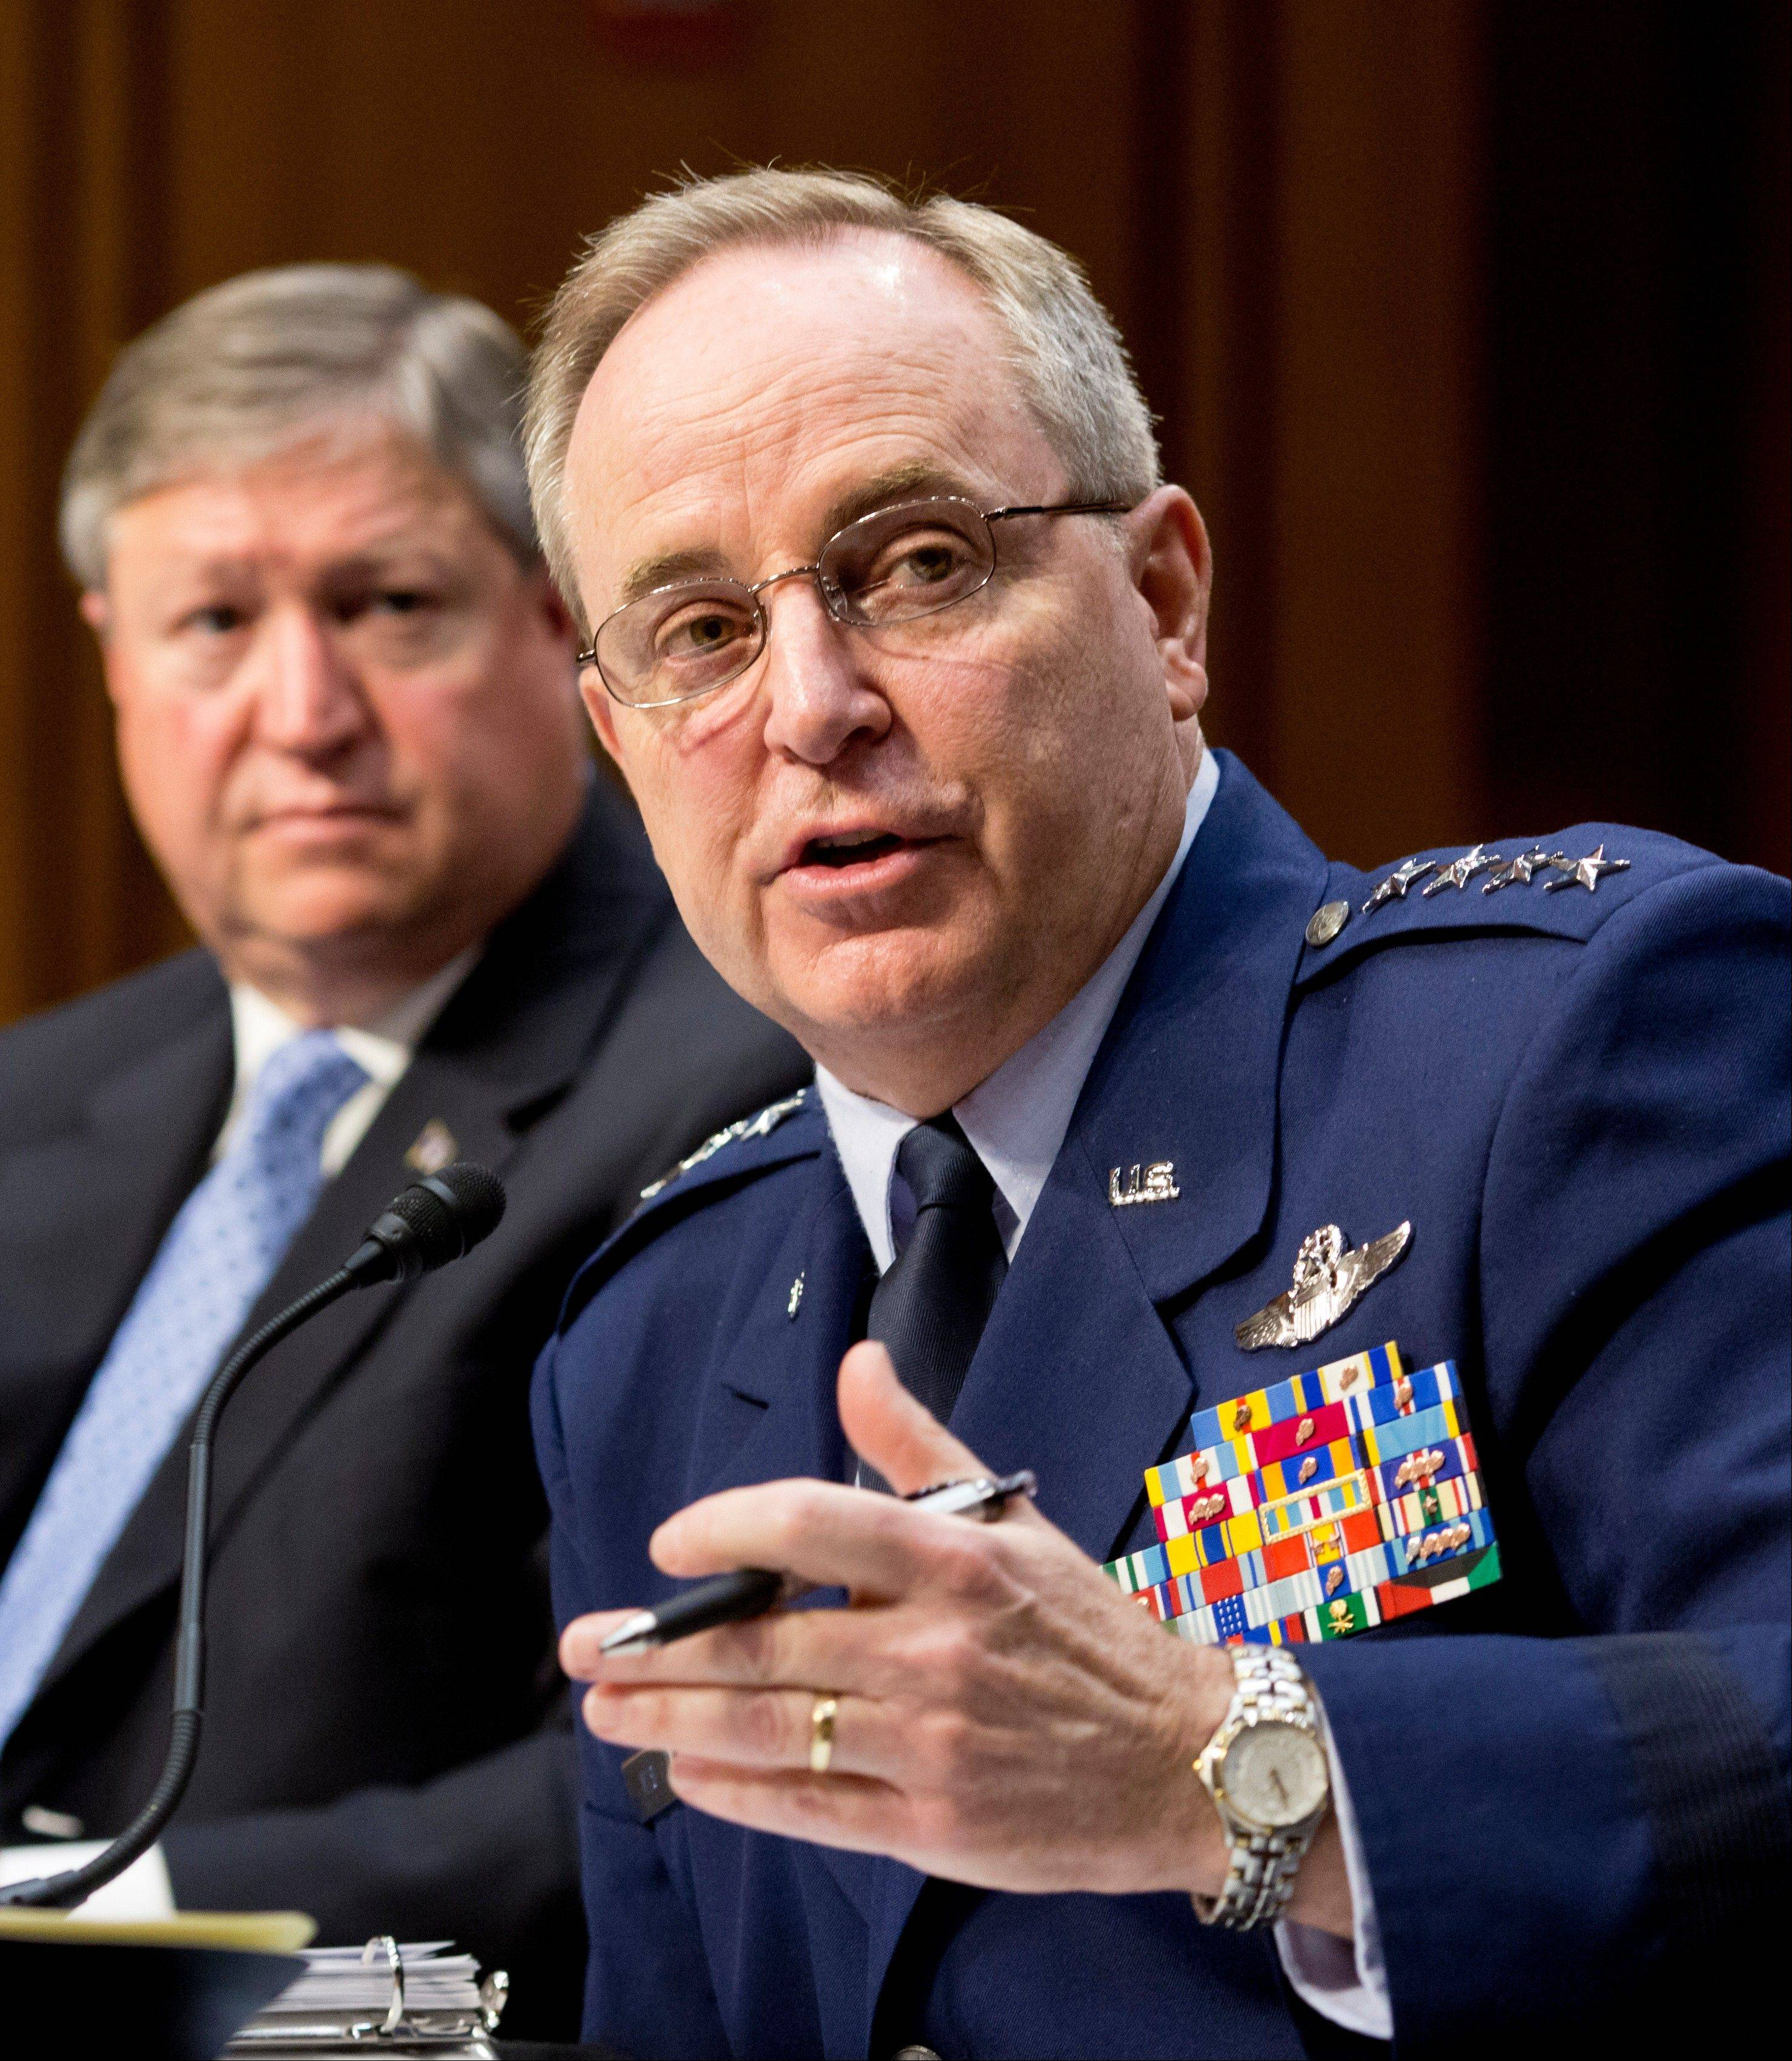 The Senate Armed Services Committee hears from top officials of the Air Force, Air Force Chief of Staff Gen. Mark A. Welsh III, right, and Secretary of the Air Force Michael B. Donley, left, during a hearing on Capitol Hill in Washington Tuesday.